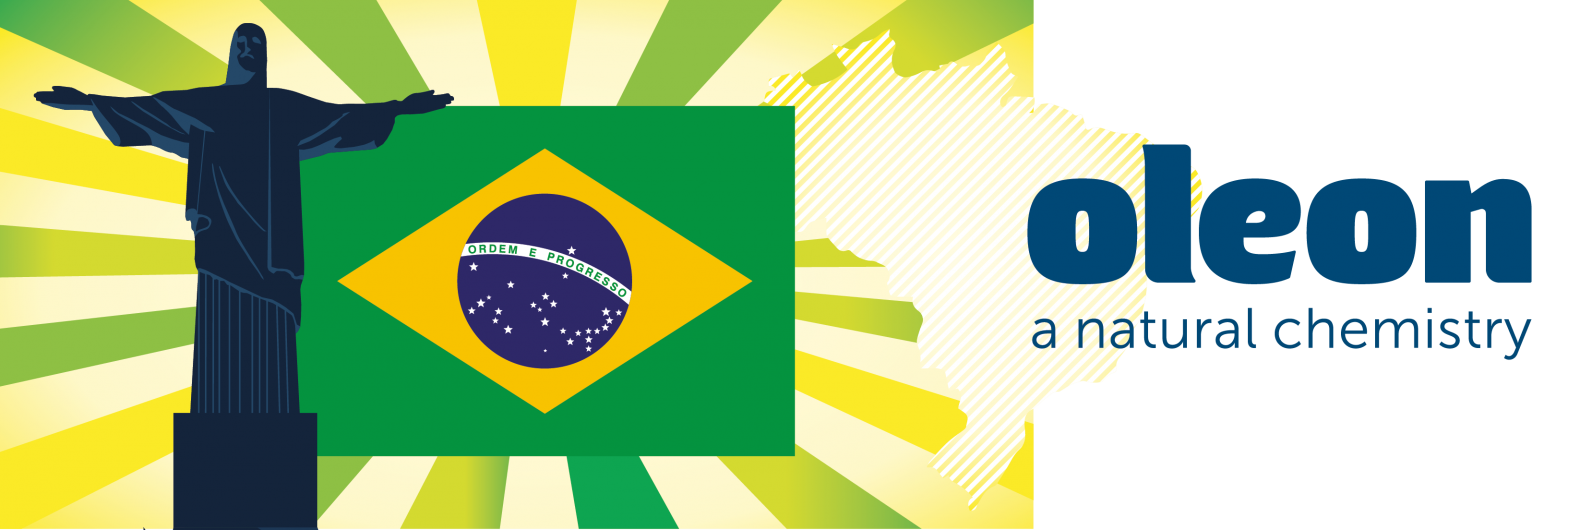 Oleon do Brasil is now fully operational